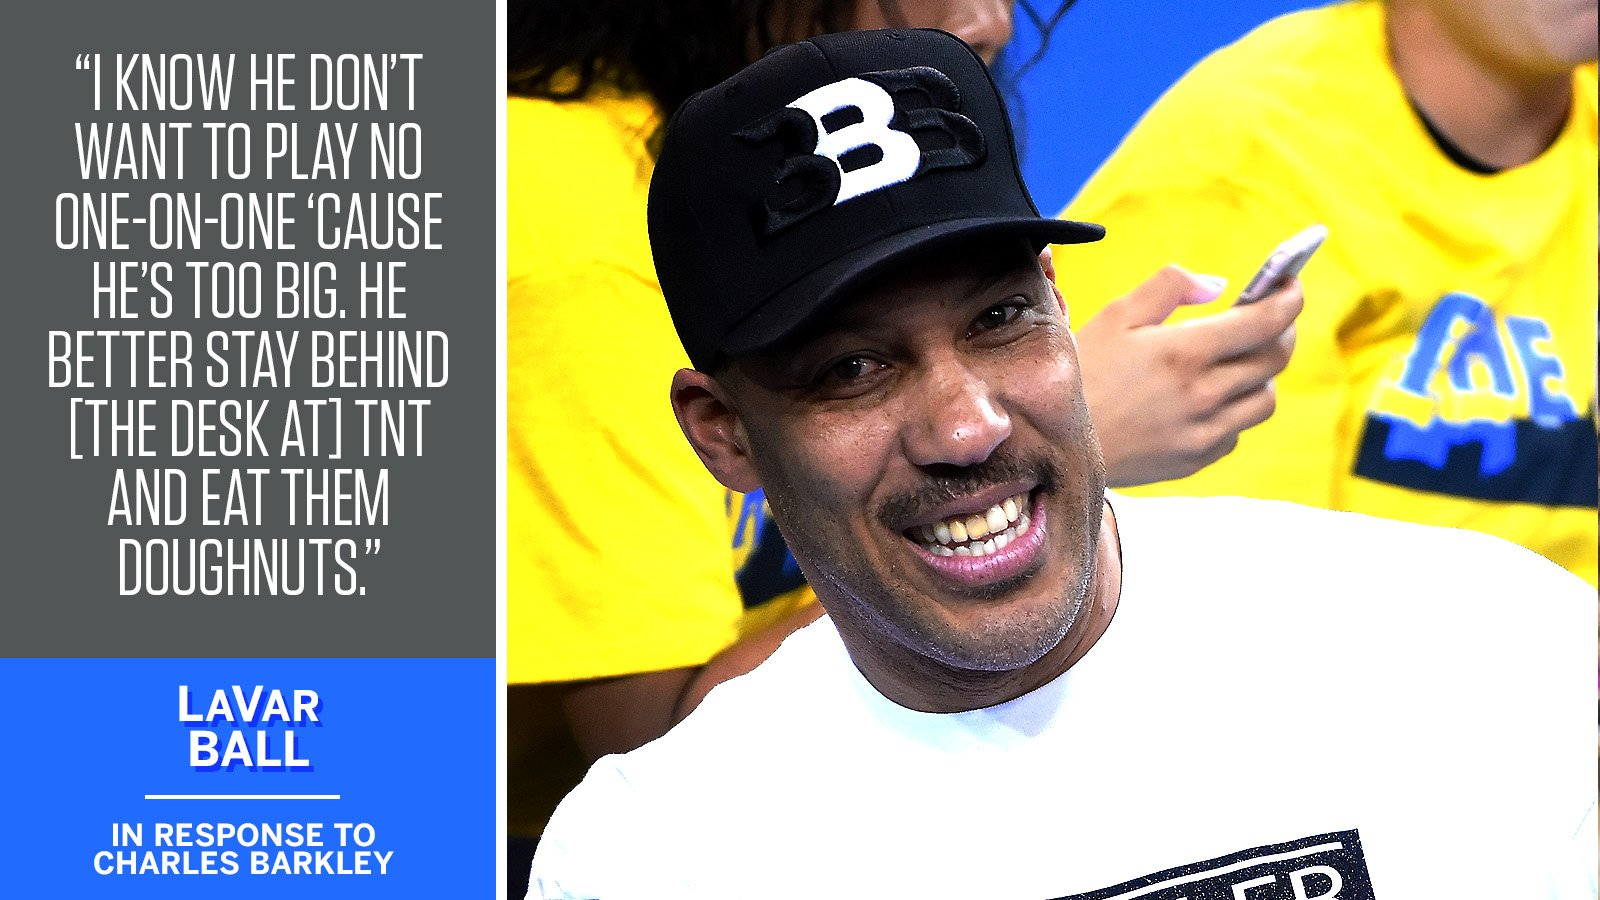 LaVar Ball told @SportsCenter he doesn't take Charles Barkley seriously.   https://t.co/9MKCZf7pKg https://t.co/ELuhx791Wx